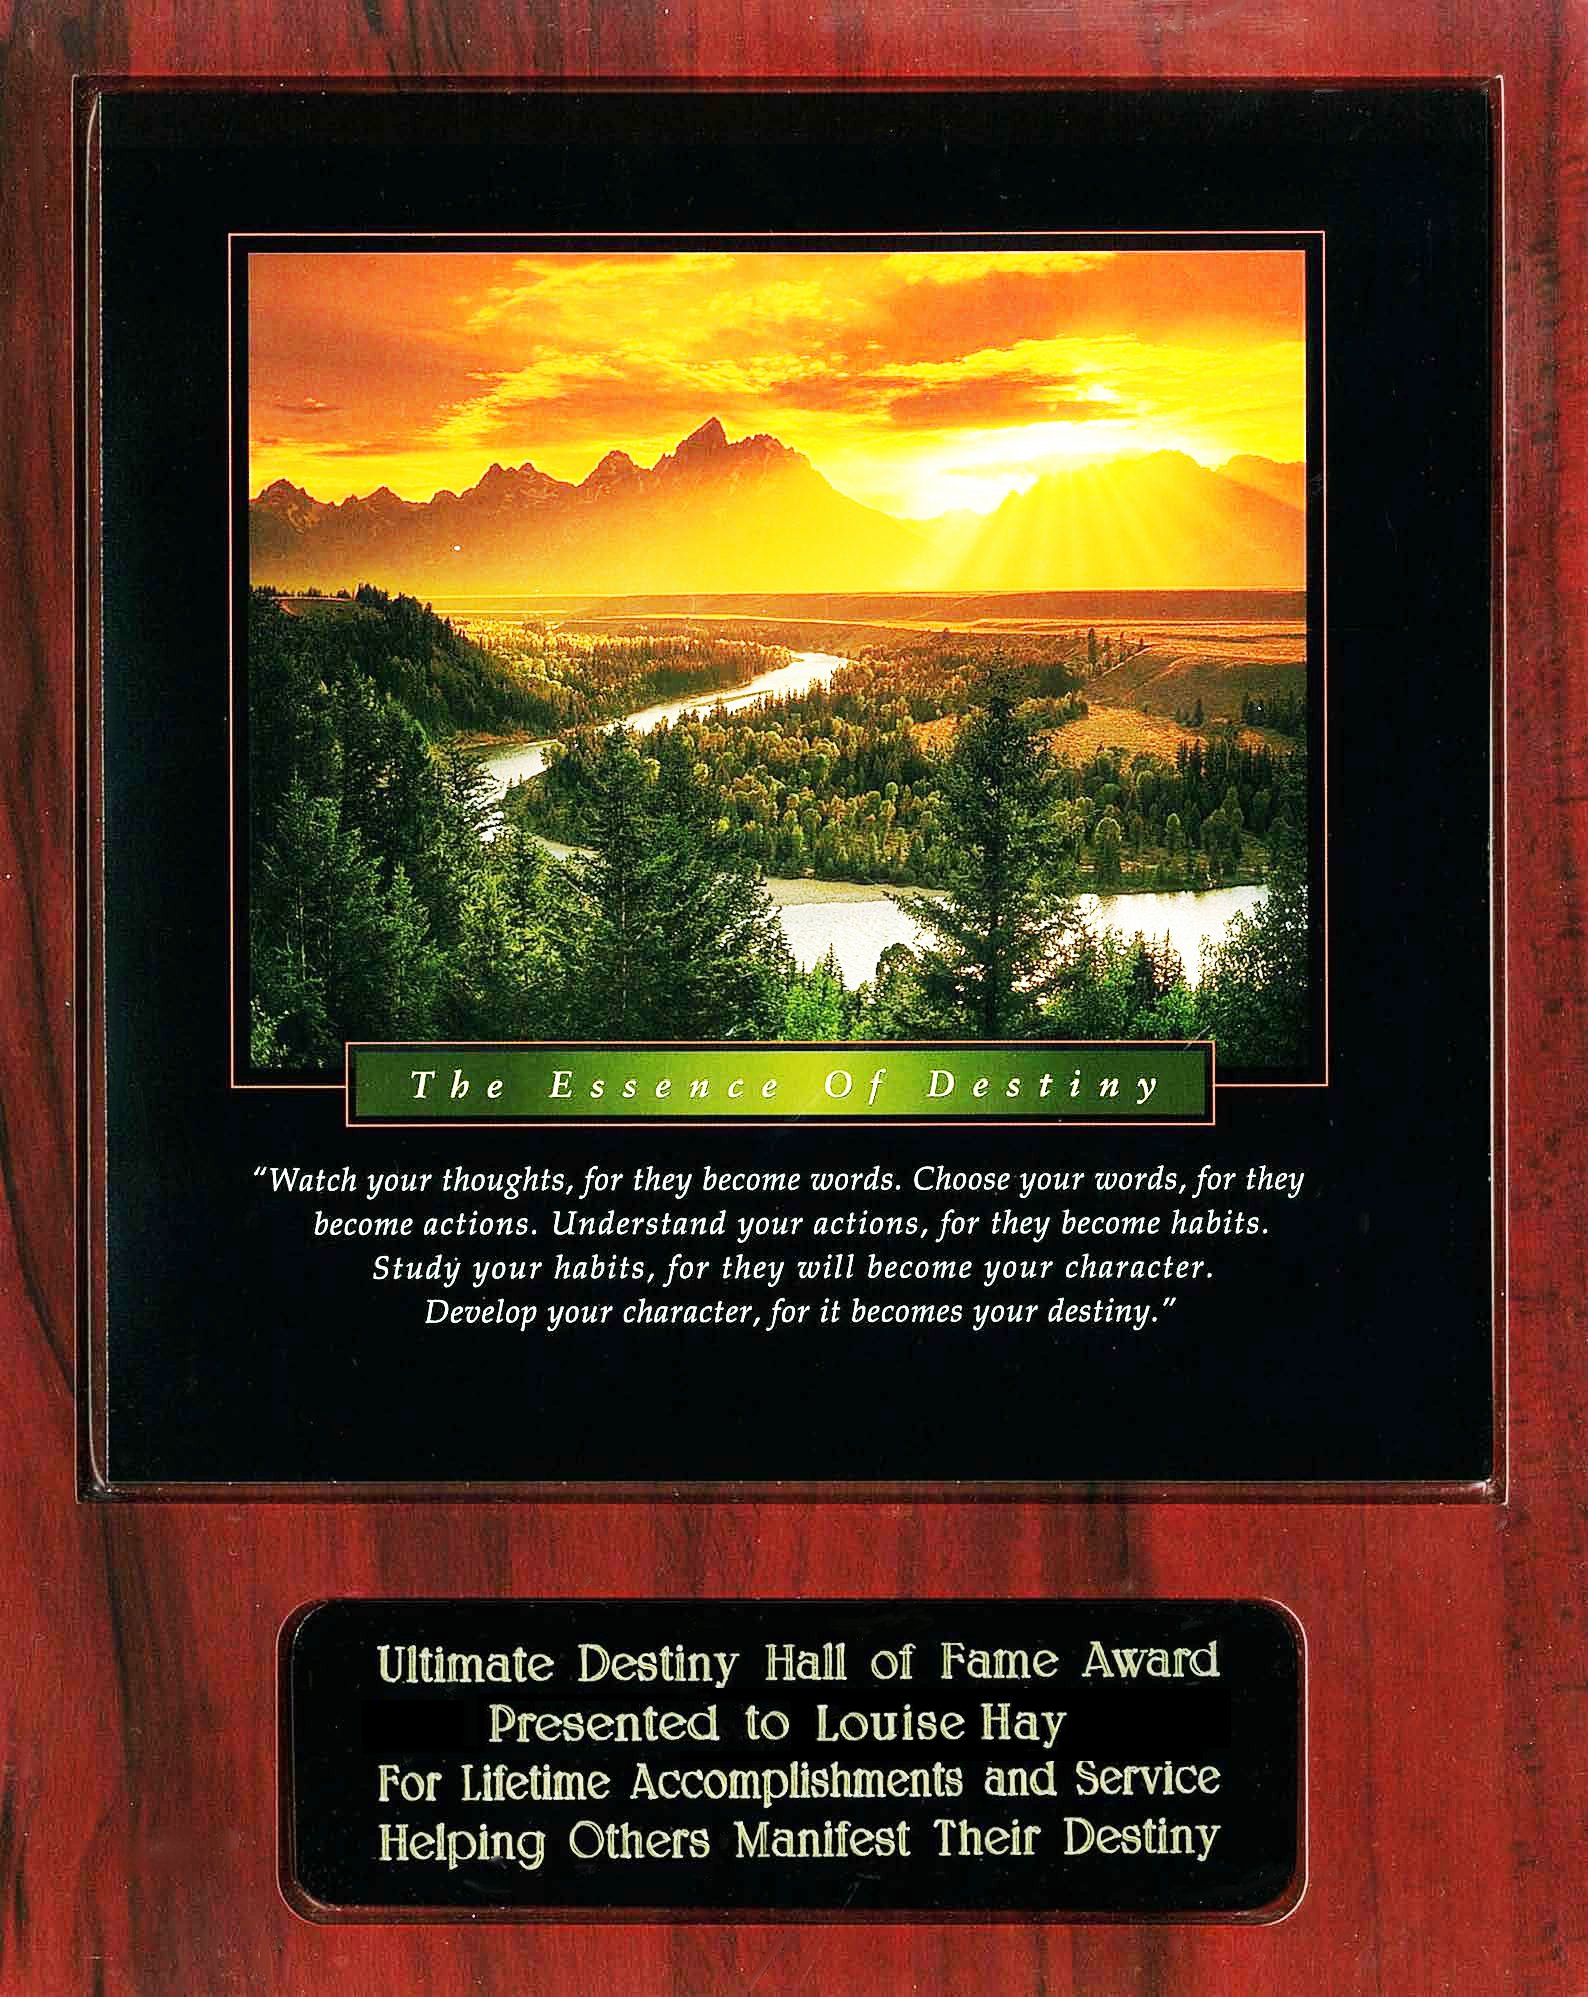 Louise Hay Ultimate Destiny Hall of Fame Award Recipient Plaque